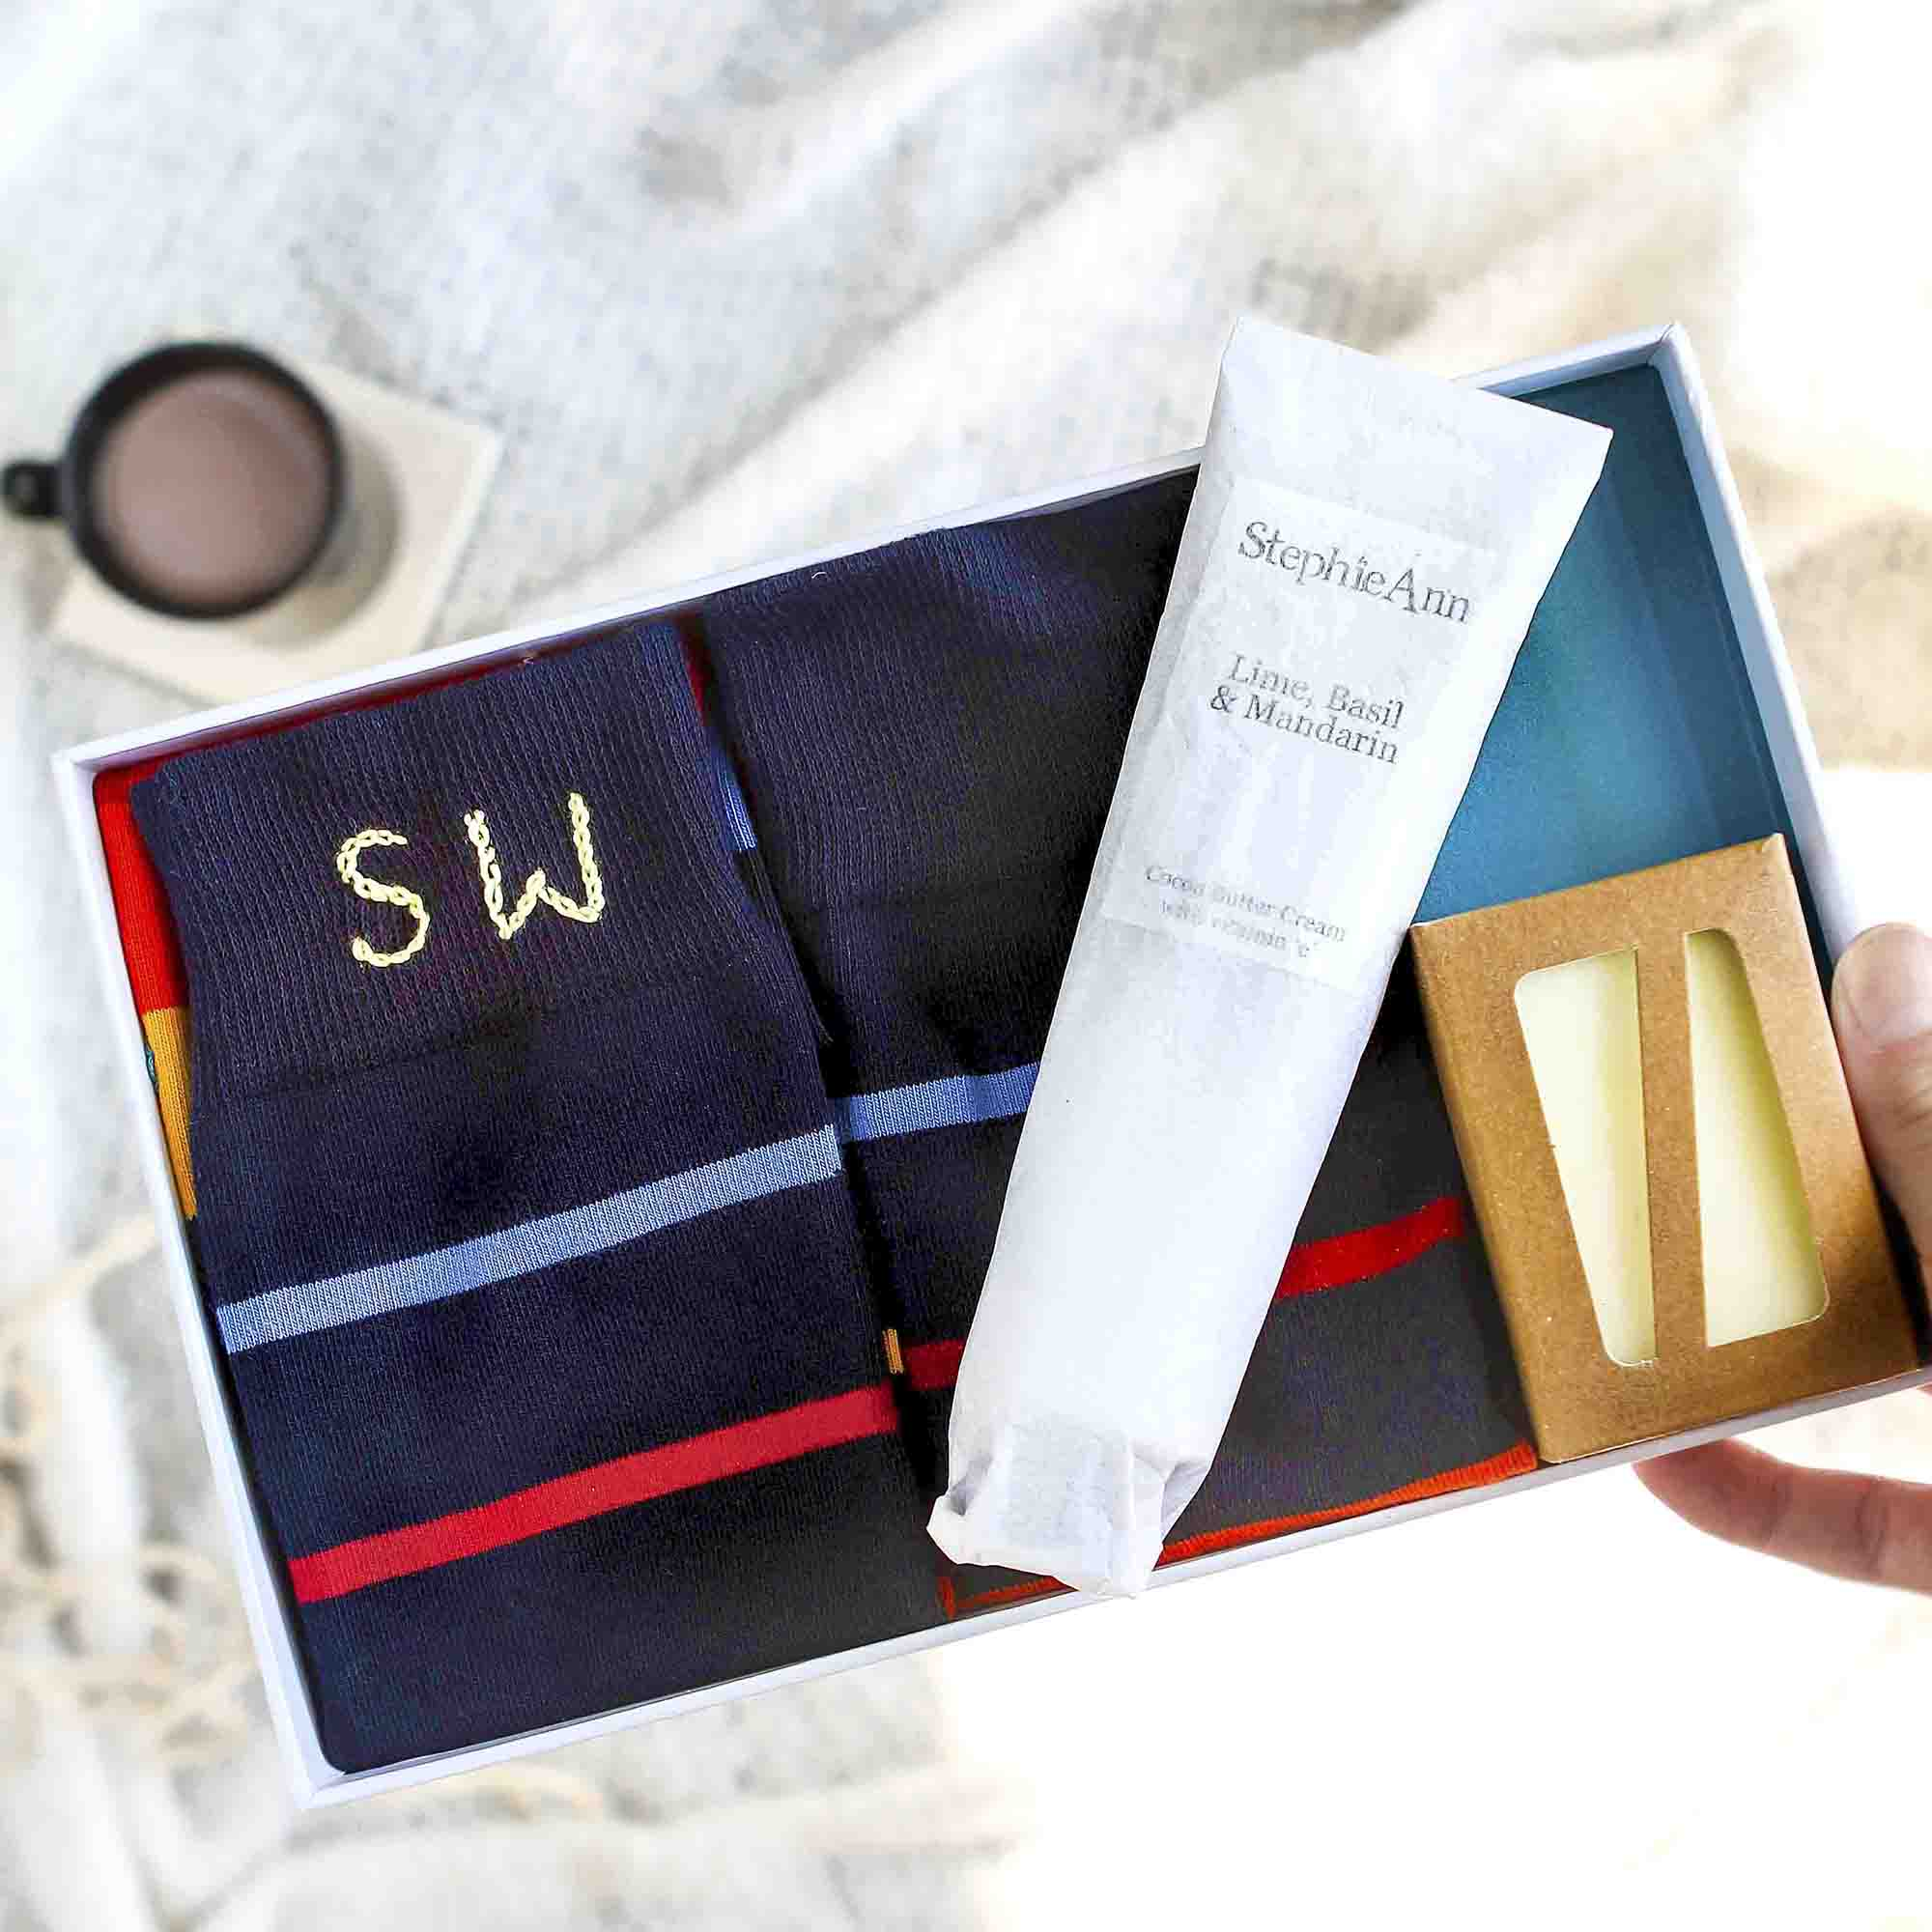 Men's Care Package gift set by StephieAnn